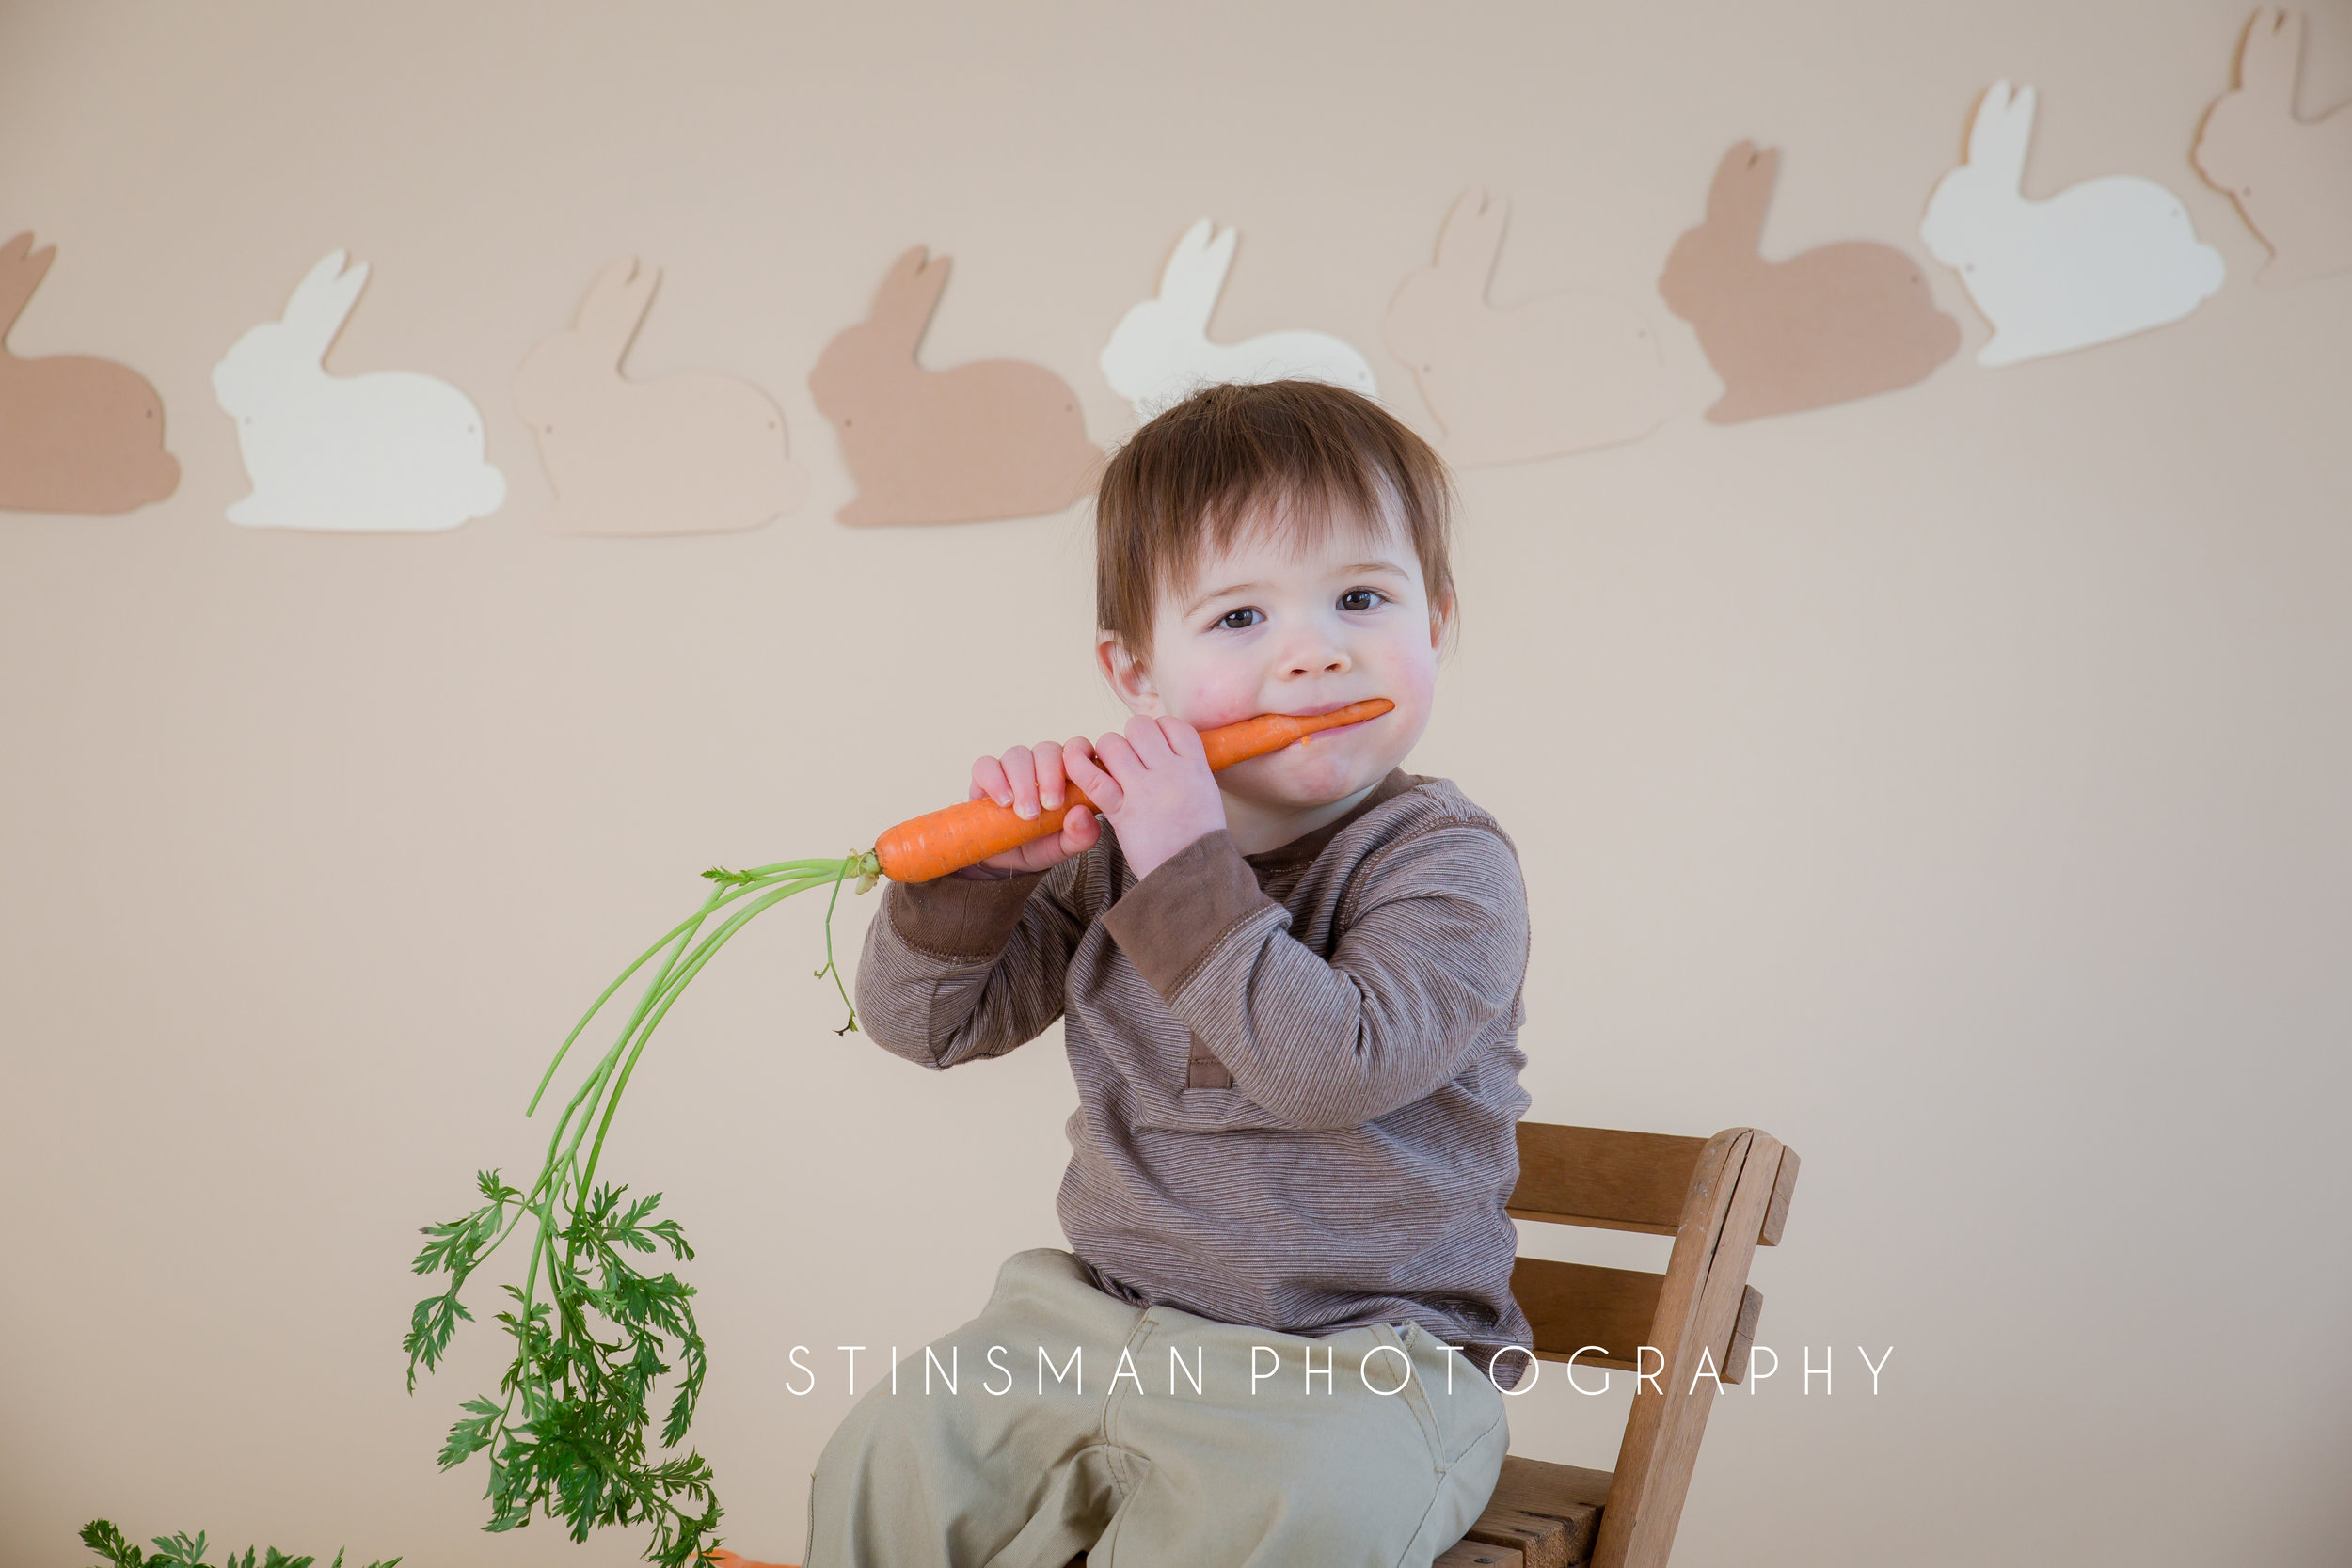 baby with two teeth sitting on a brown chair eating a carrot